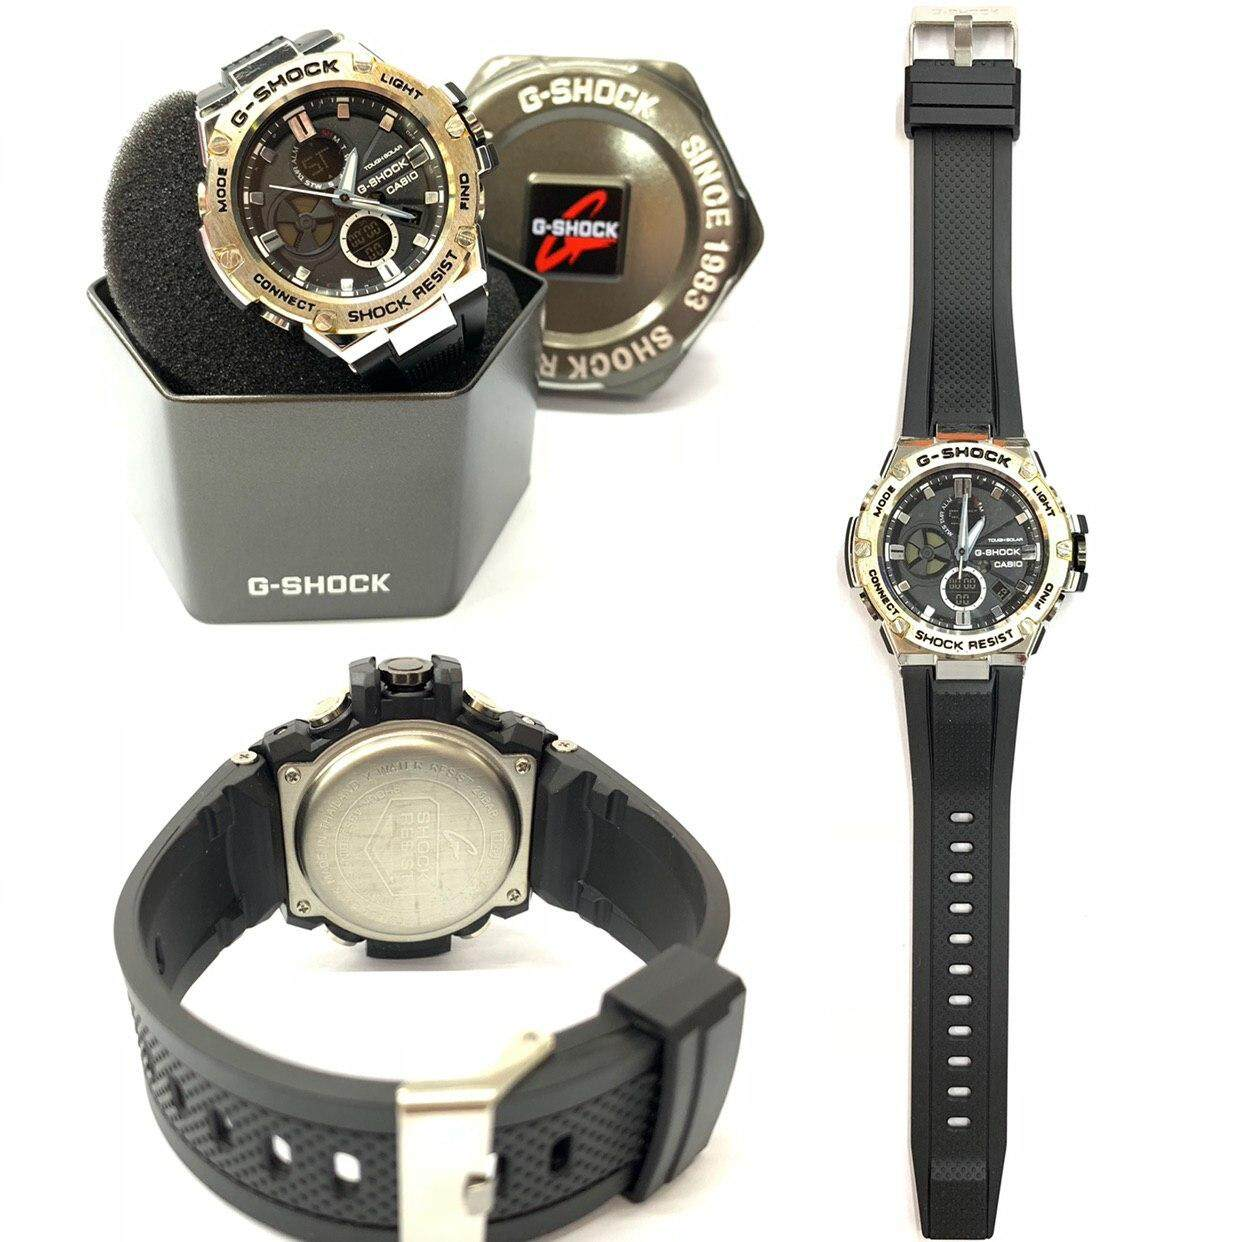 C.A.S.I.O_G.S.H.O.C.K Fashion Casual Watch For Men Ready Stock 100% Mineral Glass New Design Malaysia